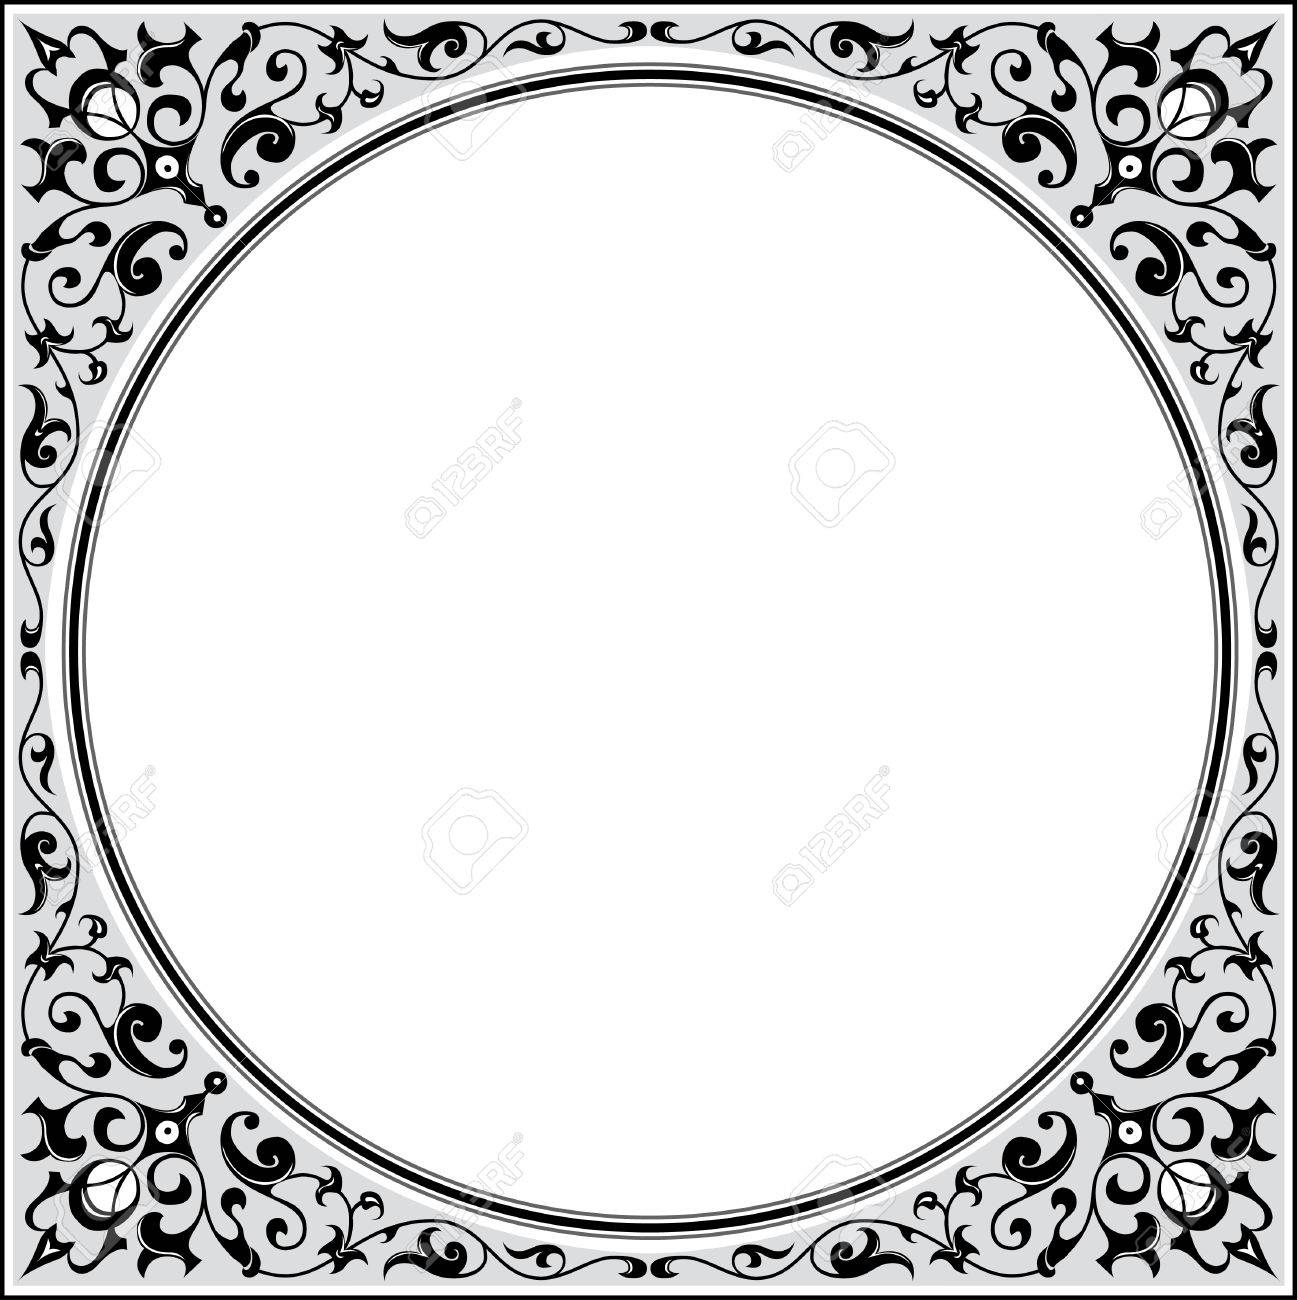 garnished square frame with corners grayscale stock vector 24306465